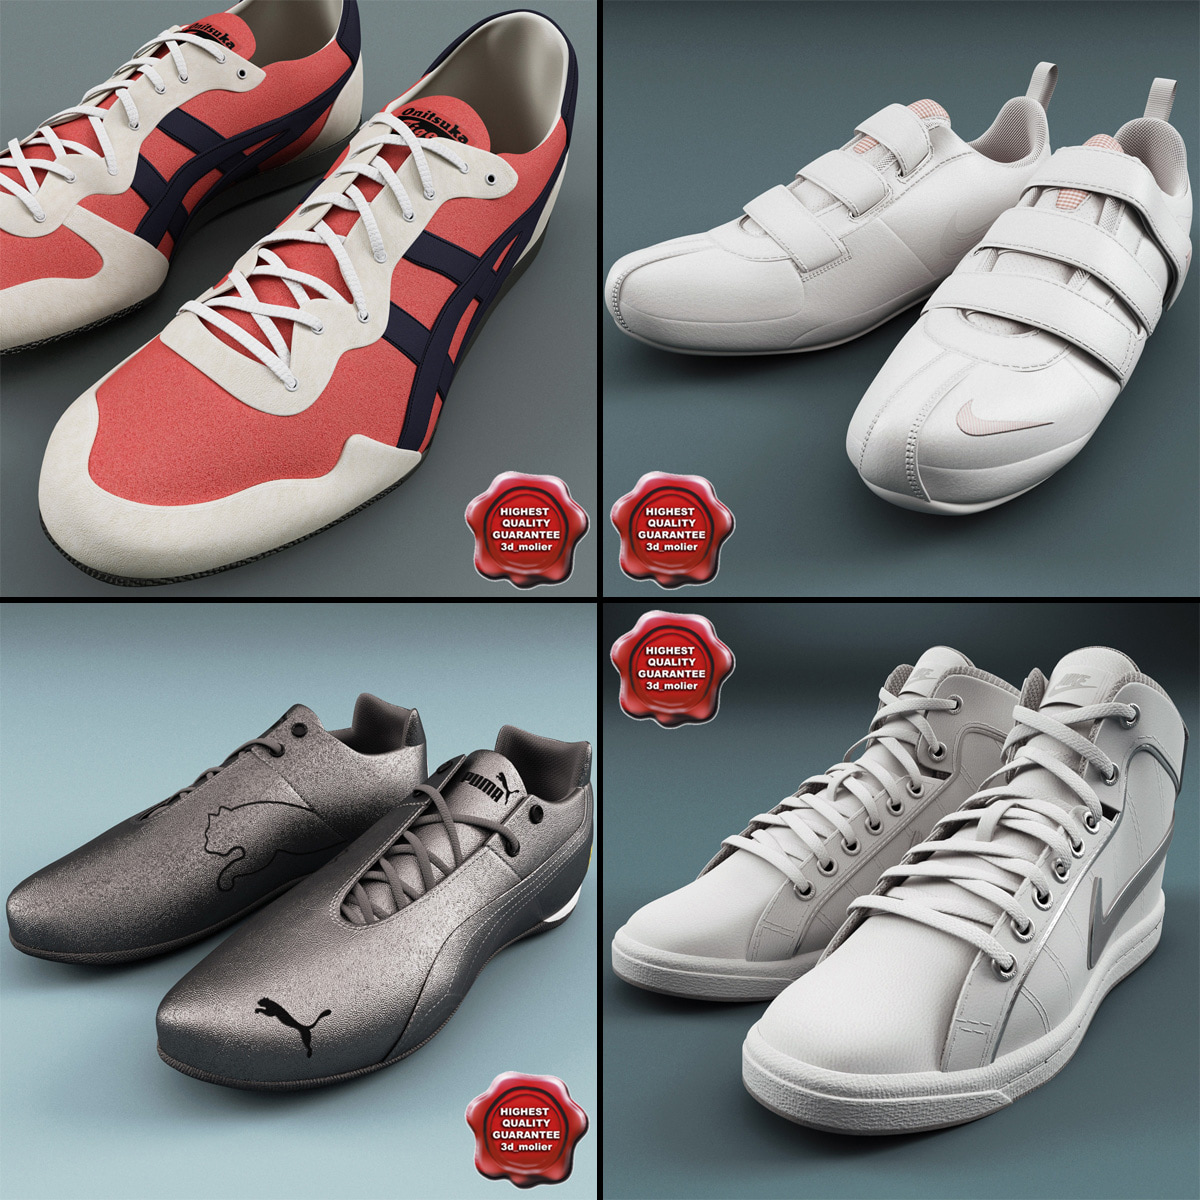 Sneakers_Collection_V4_00.jpg